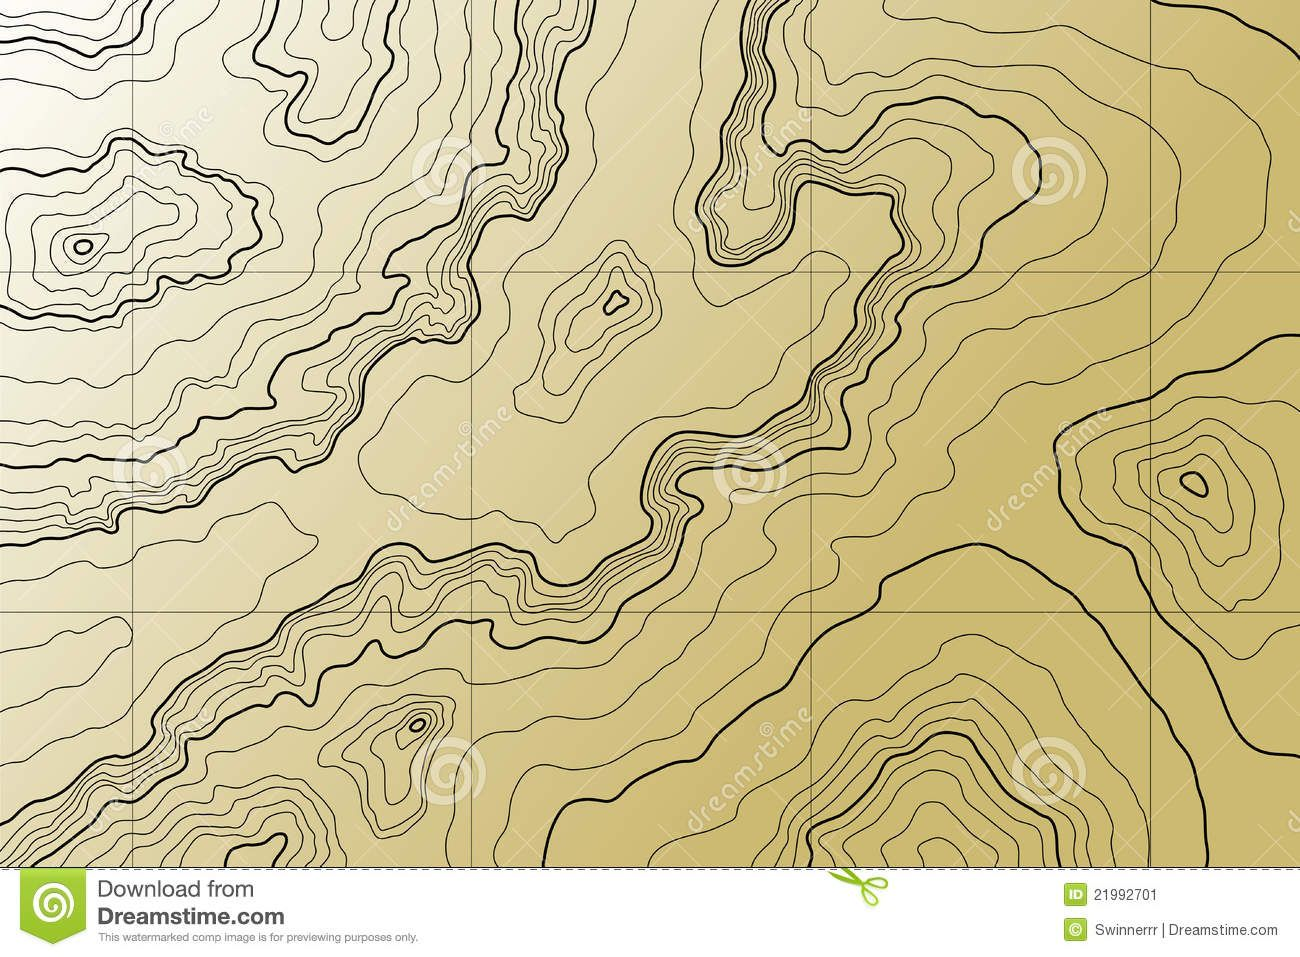 topographical map   Google Search   explorer journal   Pinterest     topographical map   Google Search